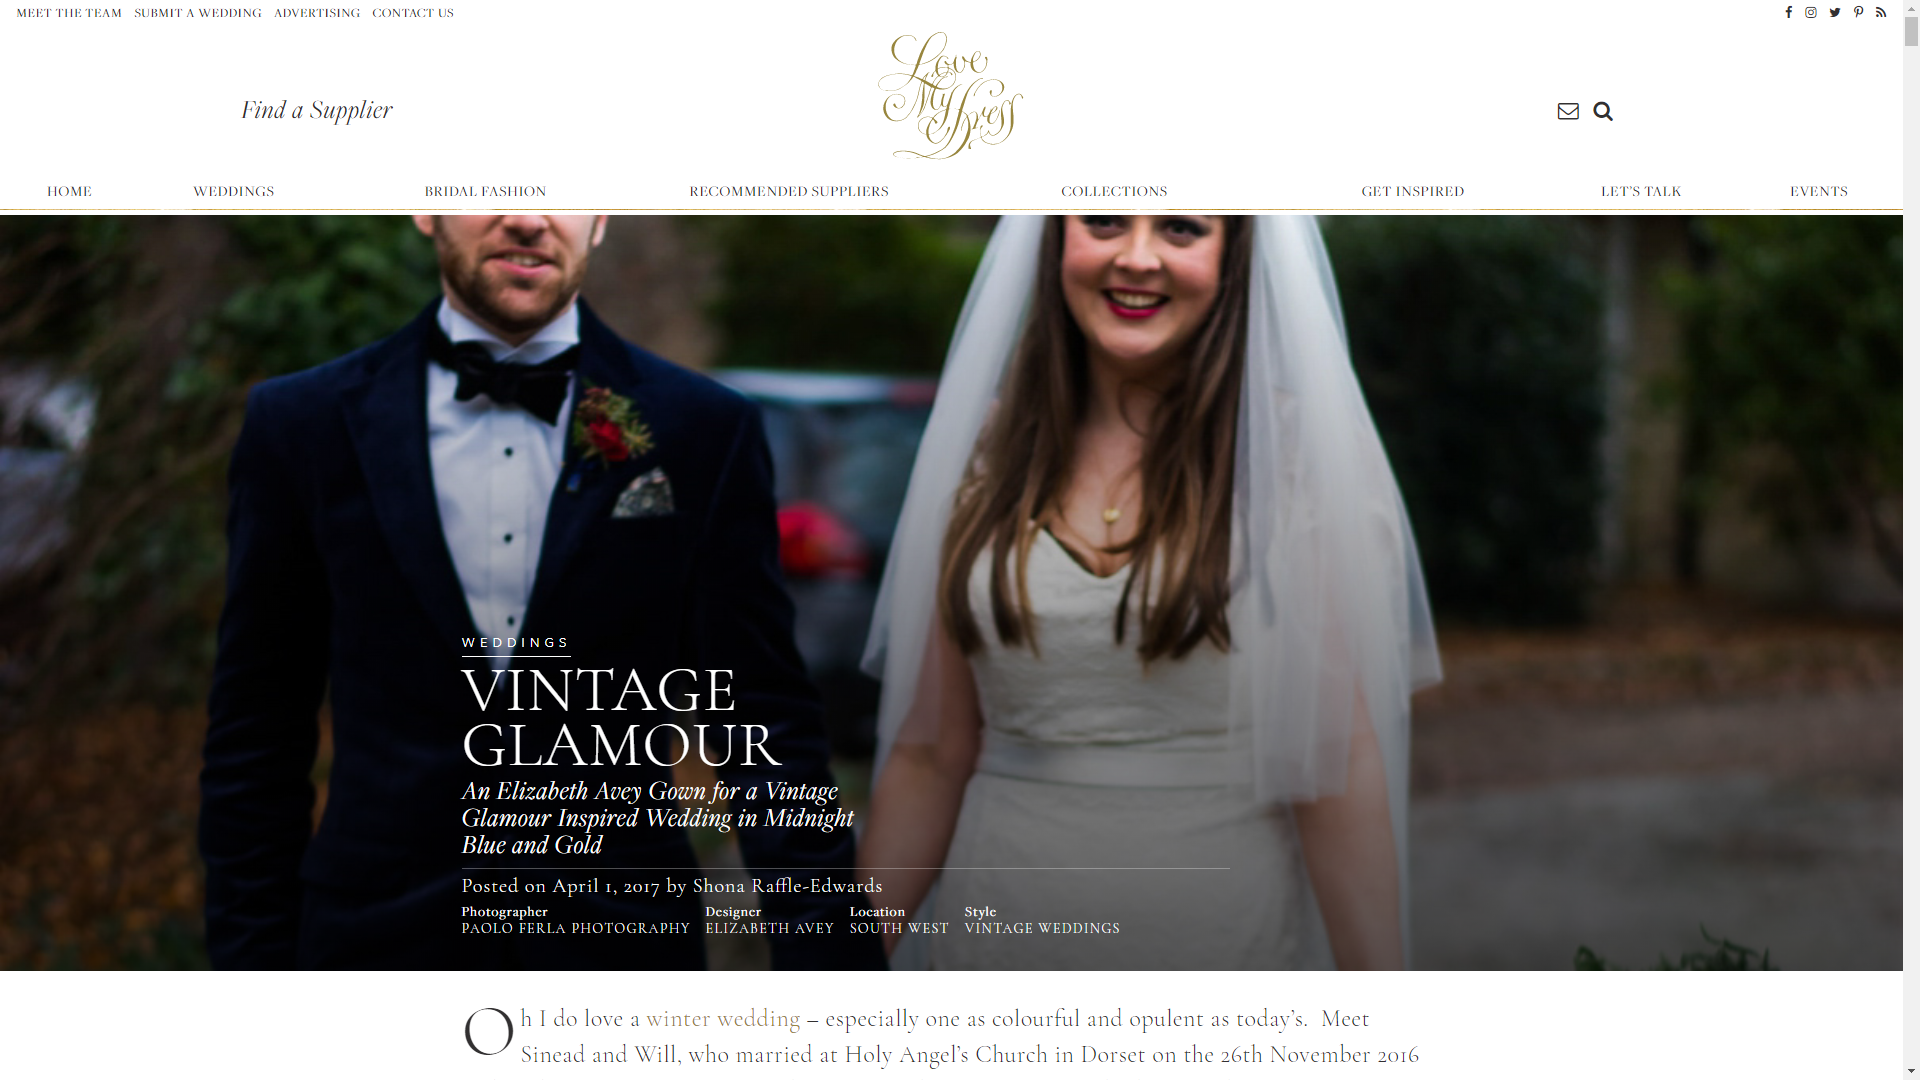 An Elizabeth Avey Gown for a Vintage Glamour Inspired Wedding in Midnight Blue and Gold